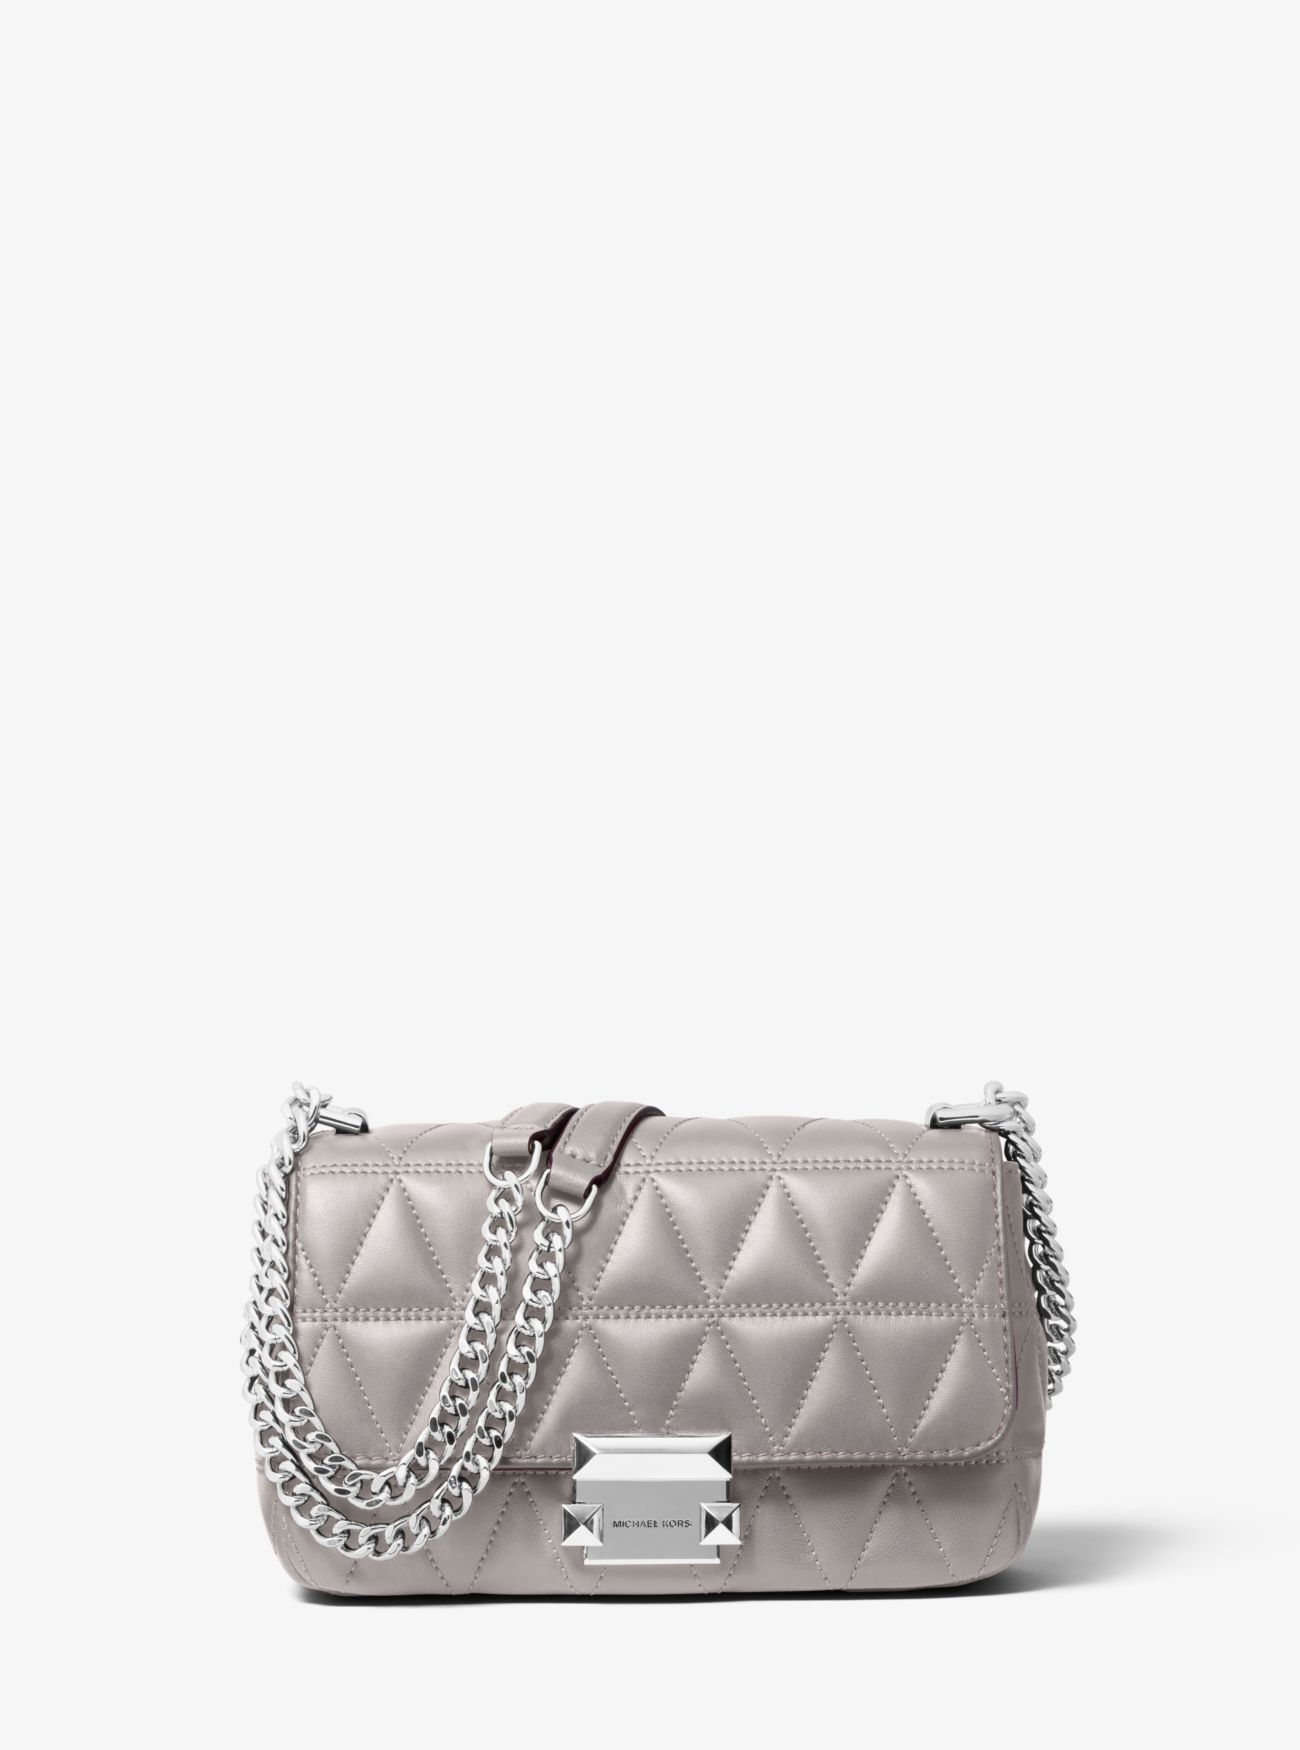 Sloan Small Quilted Leather Crossbody Michael Kors